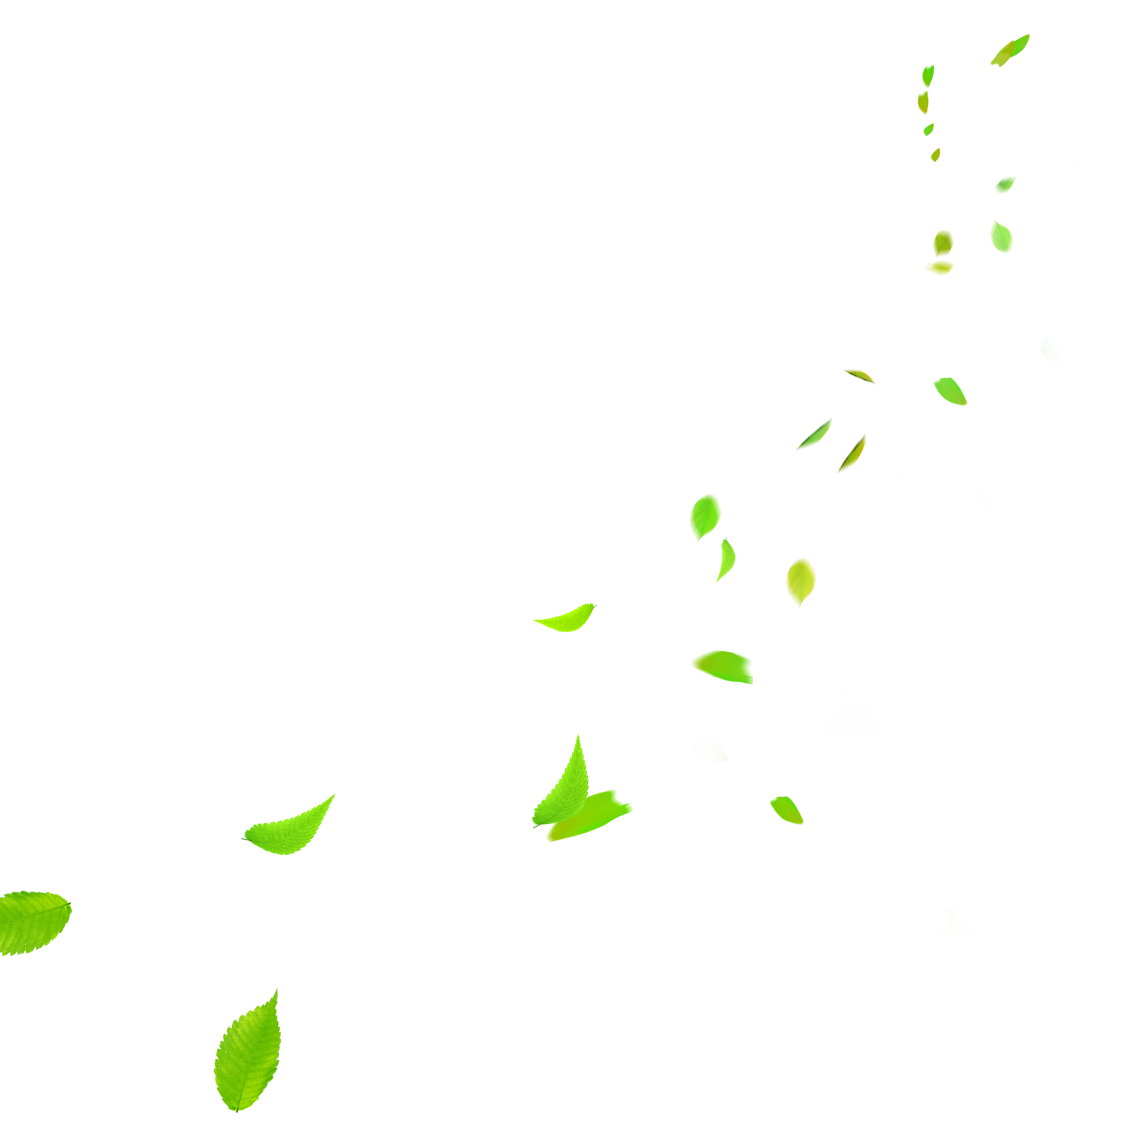 Green leaves falling png. Clip art clear transprent